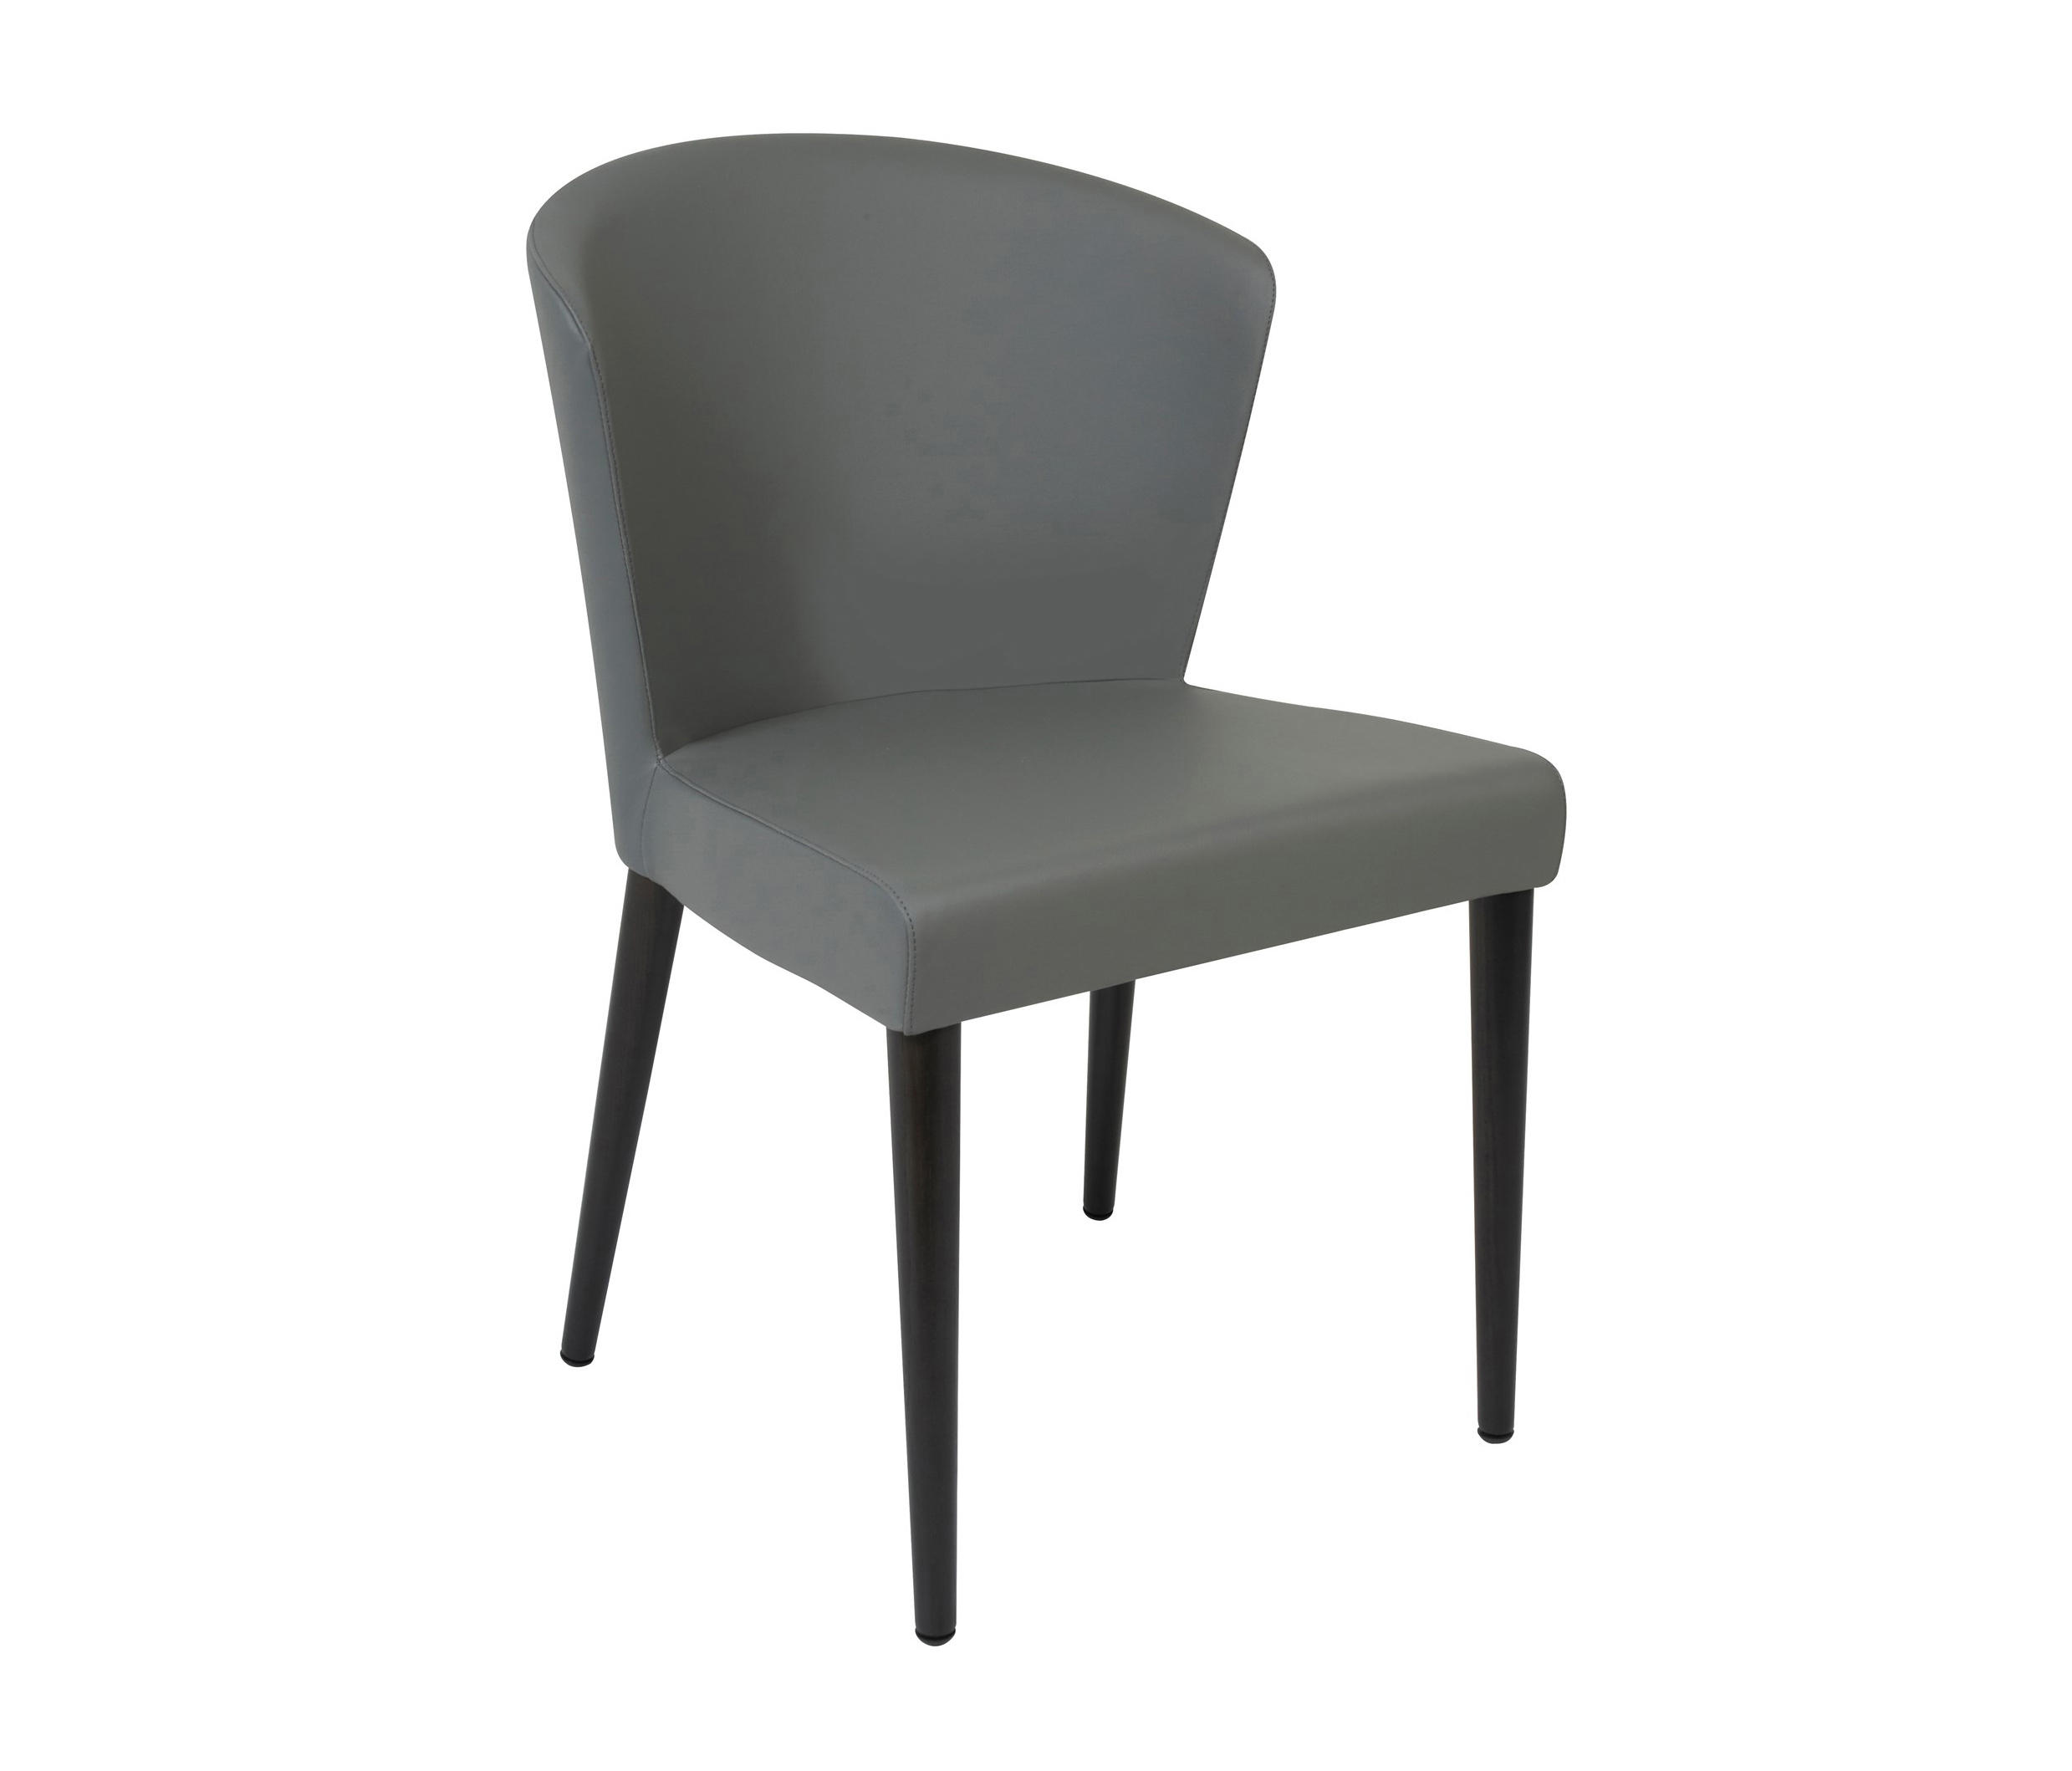 Fabricant Fenetre Gray Verona Chair Grey With Wenge Legs Chaises De Oggetti